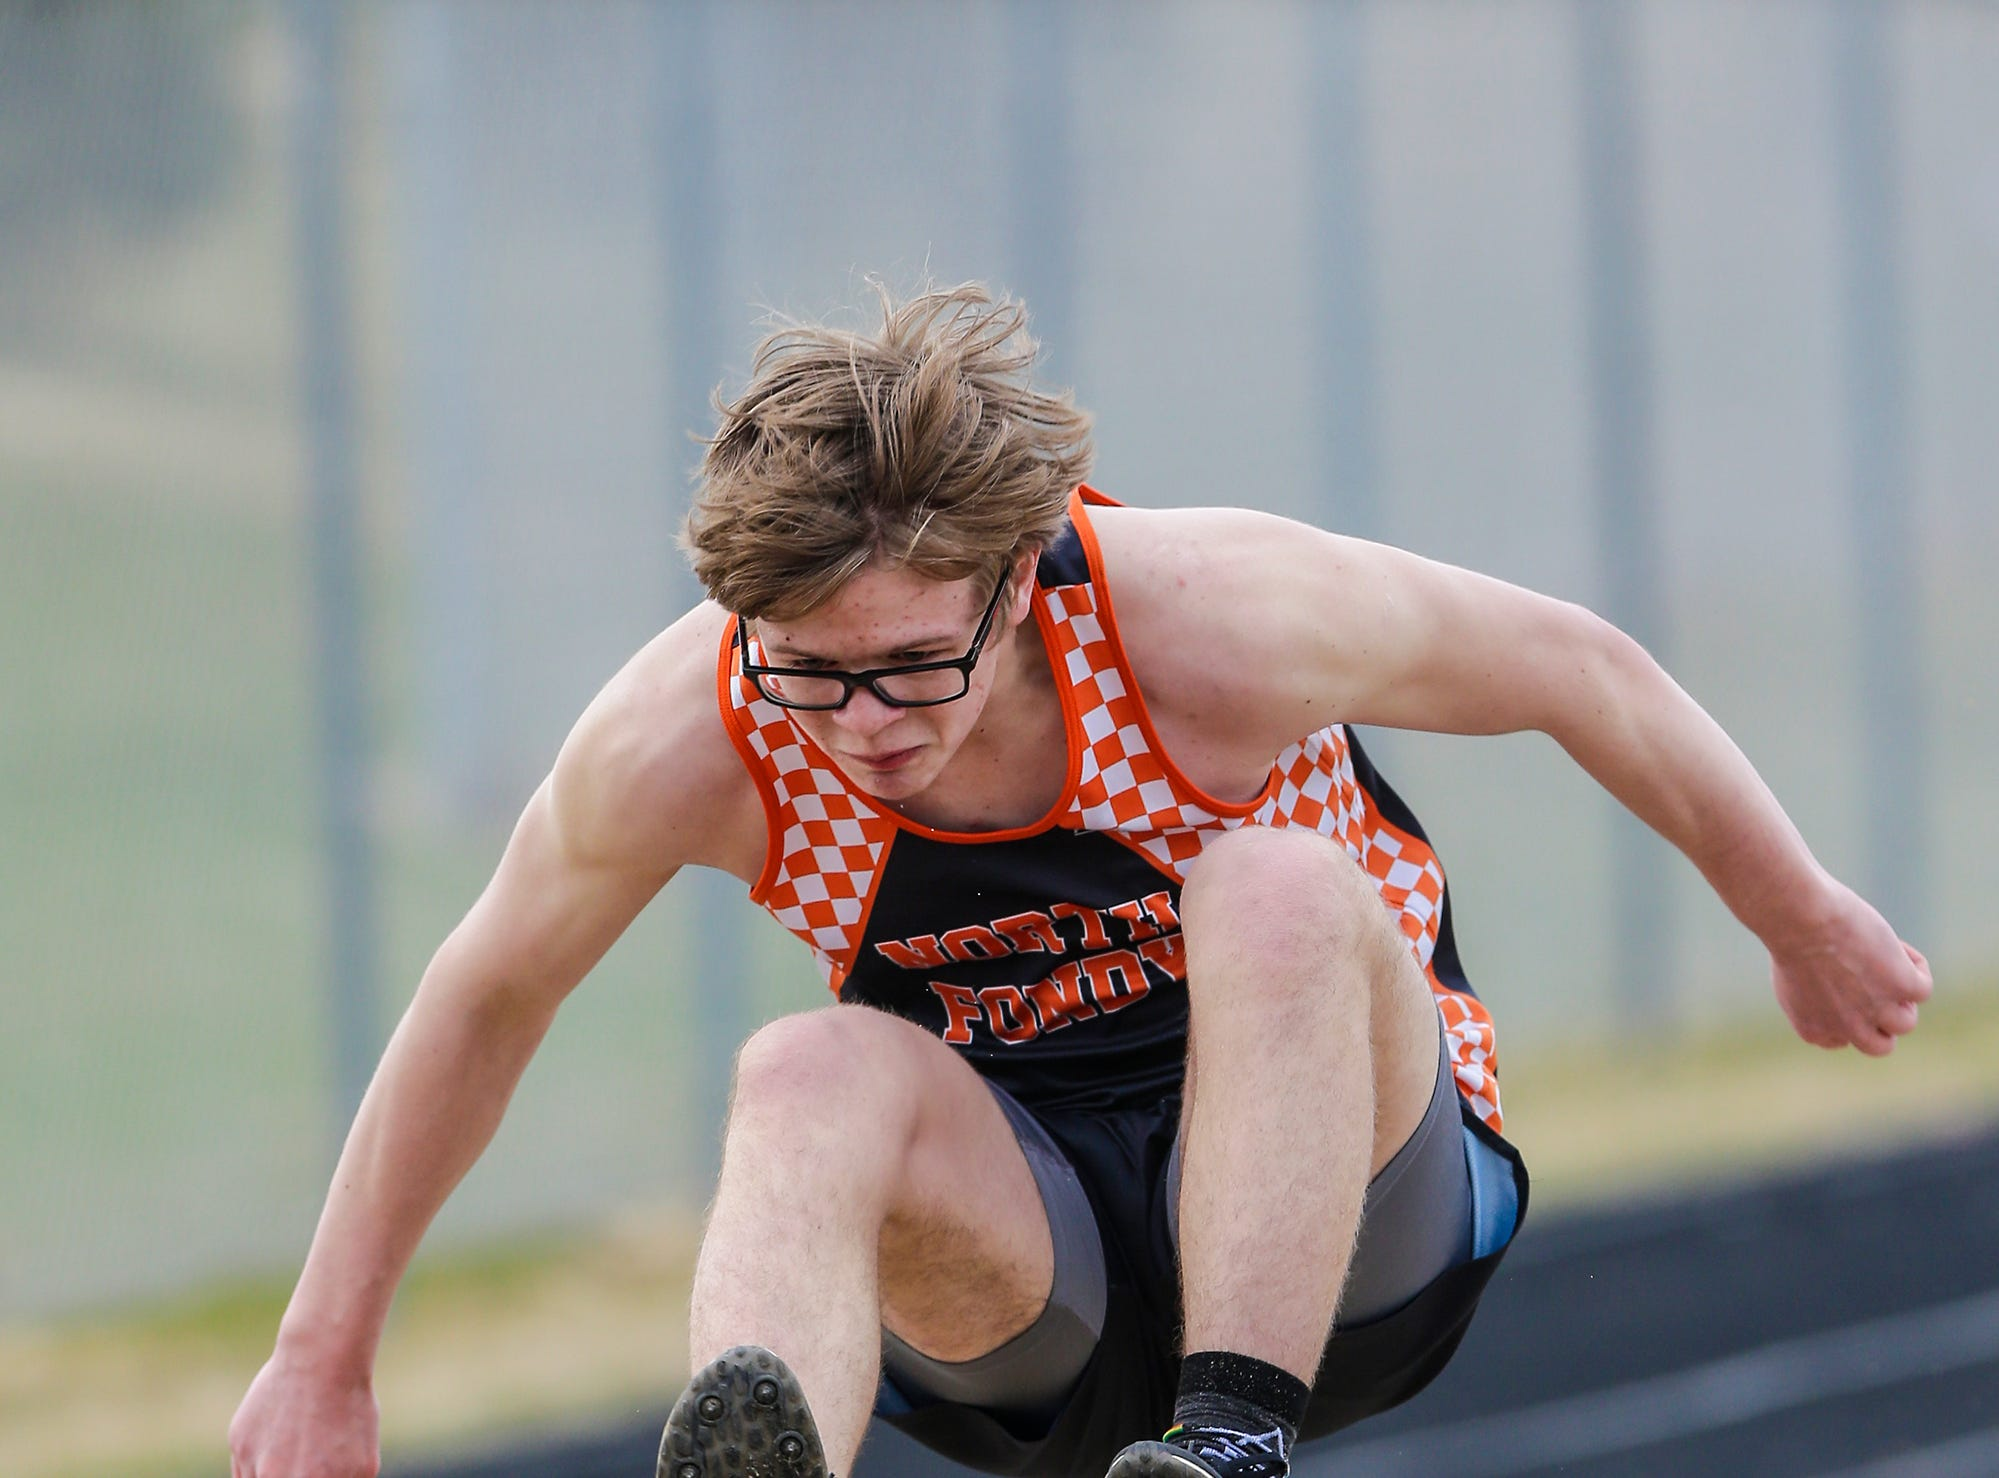 North Fond du Lac High School's Eathon Seaton takes part in the High Jump Tuesday, April 16, 2019 at North Fond du Lac High School in North Fond du Lac, Wis. Doug Raflik/USA TODAY NETWORK-Wisconsin